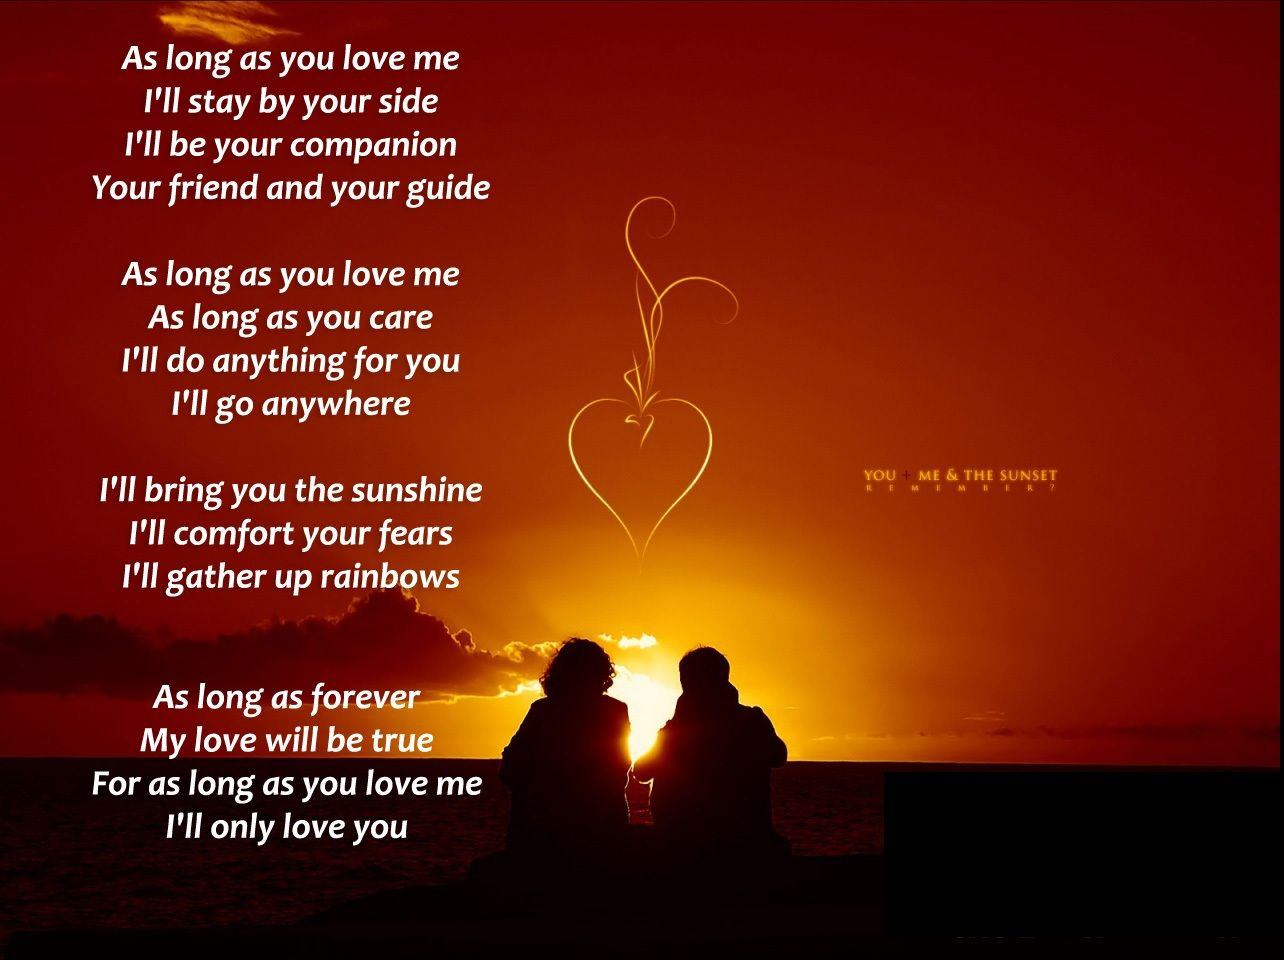 Free Love Poems And Quotes Cute Love Poems Wallpaper Download Via Heroeswallpapers